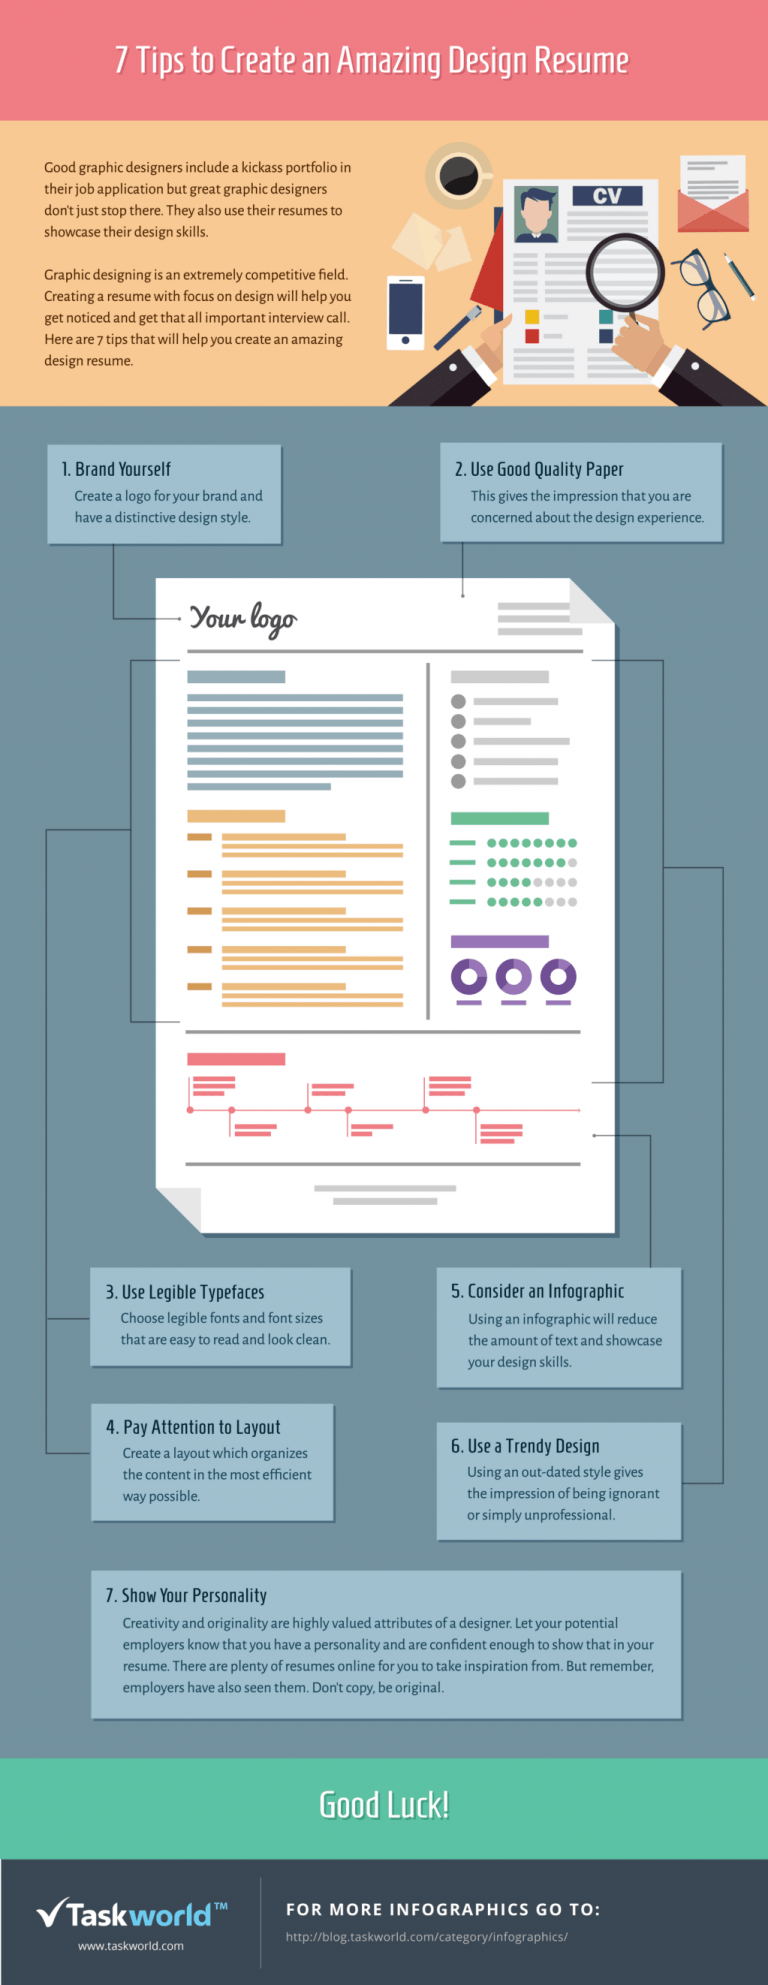 7 tips to create an amazing design resume infographic e learning 7 tips to create an amazing design resume infographic e learning infographics